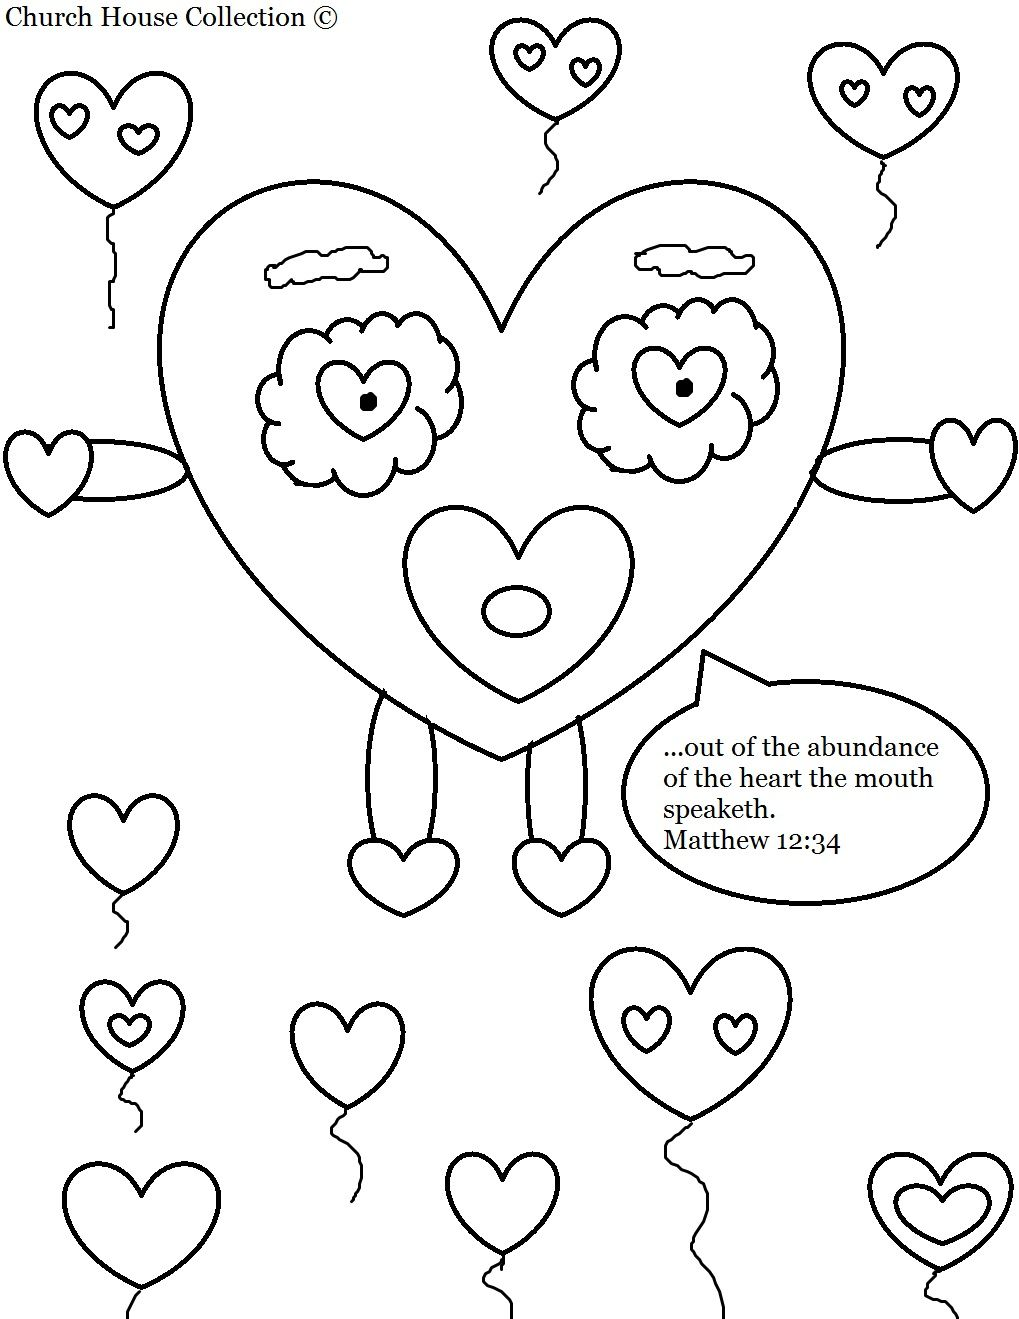 Church House Collection Blog Valentines Day Heart Coloring Page